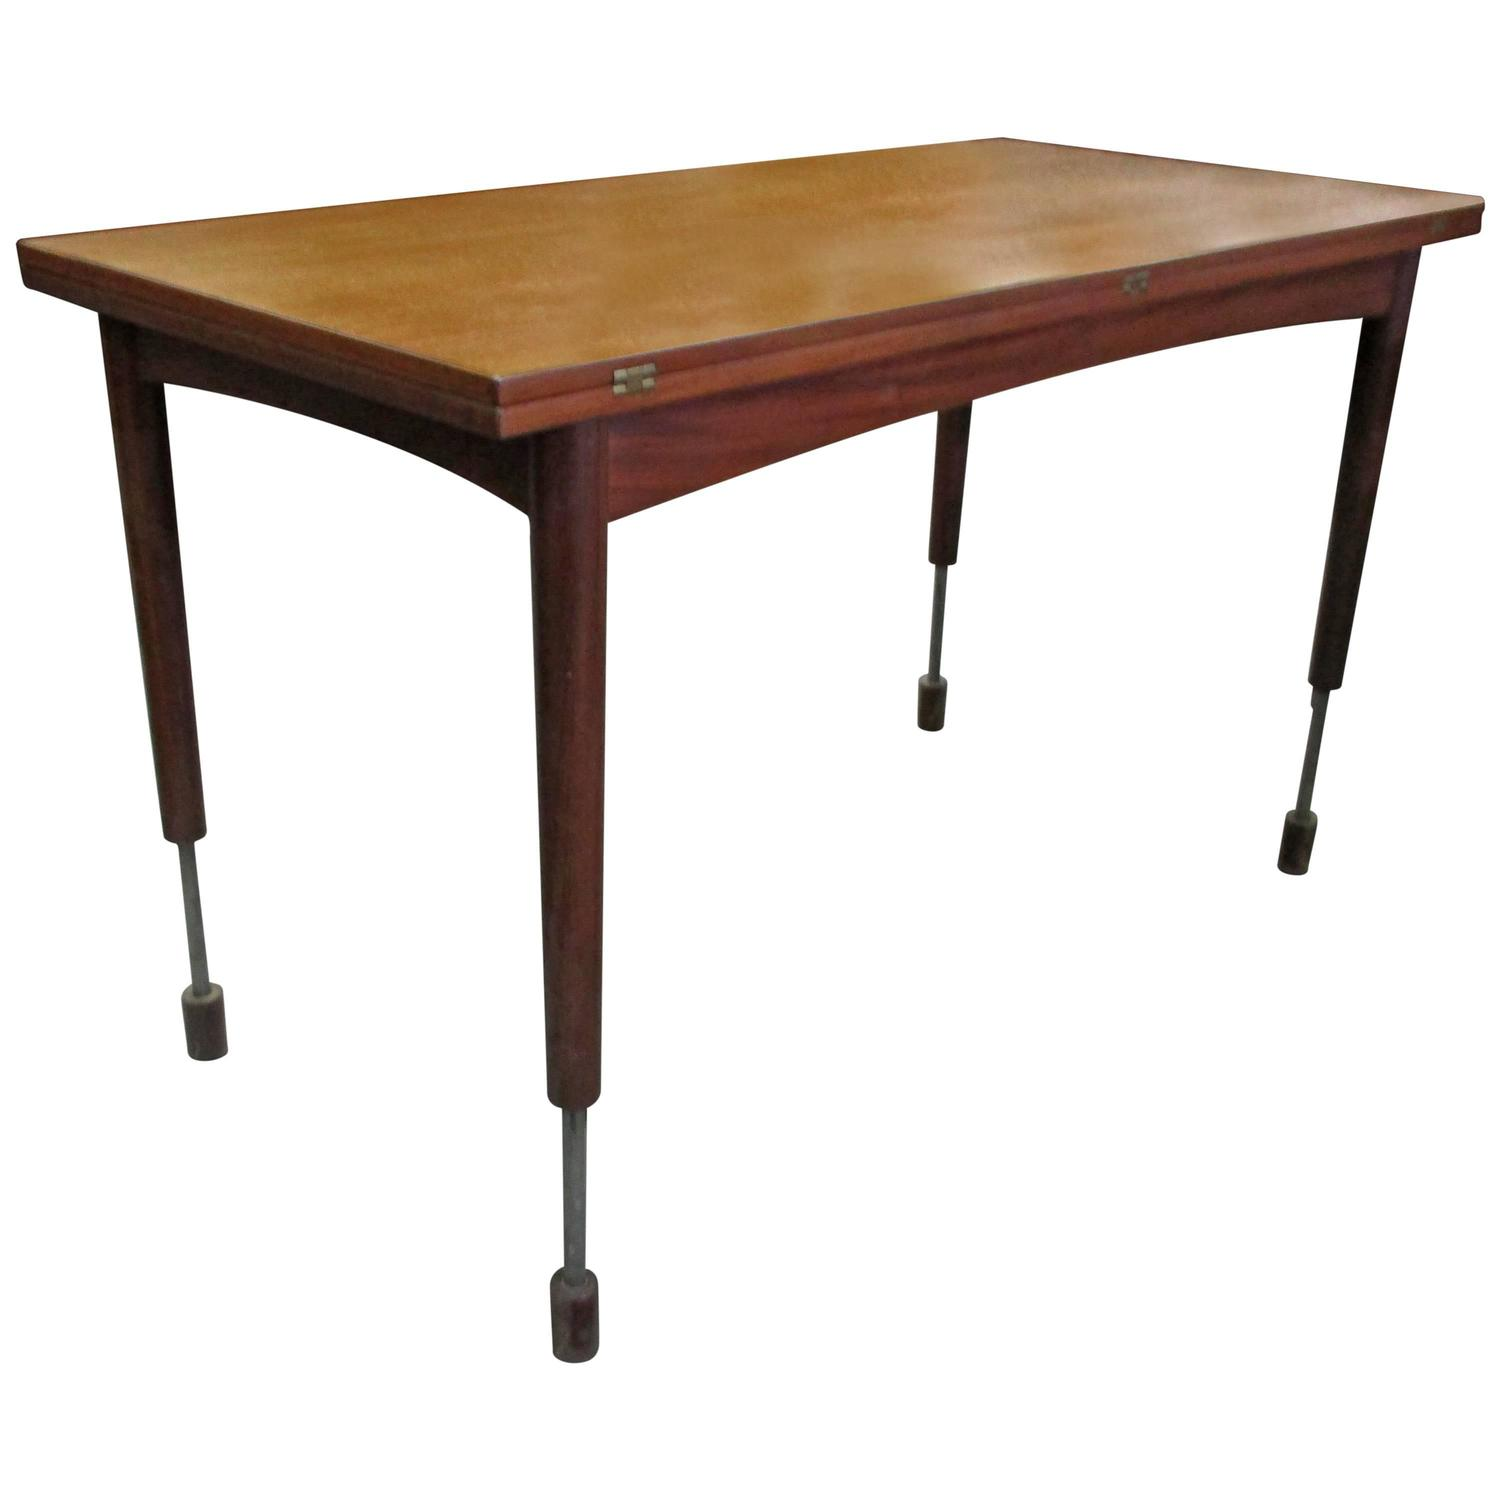 Hans olsen coffee table converts to dining table for sale at 1stdibs Coffee table to dining table